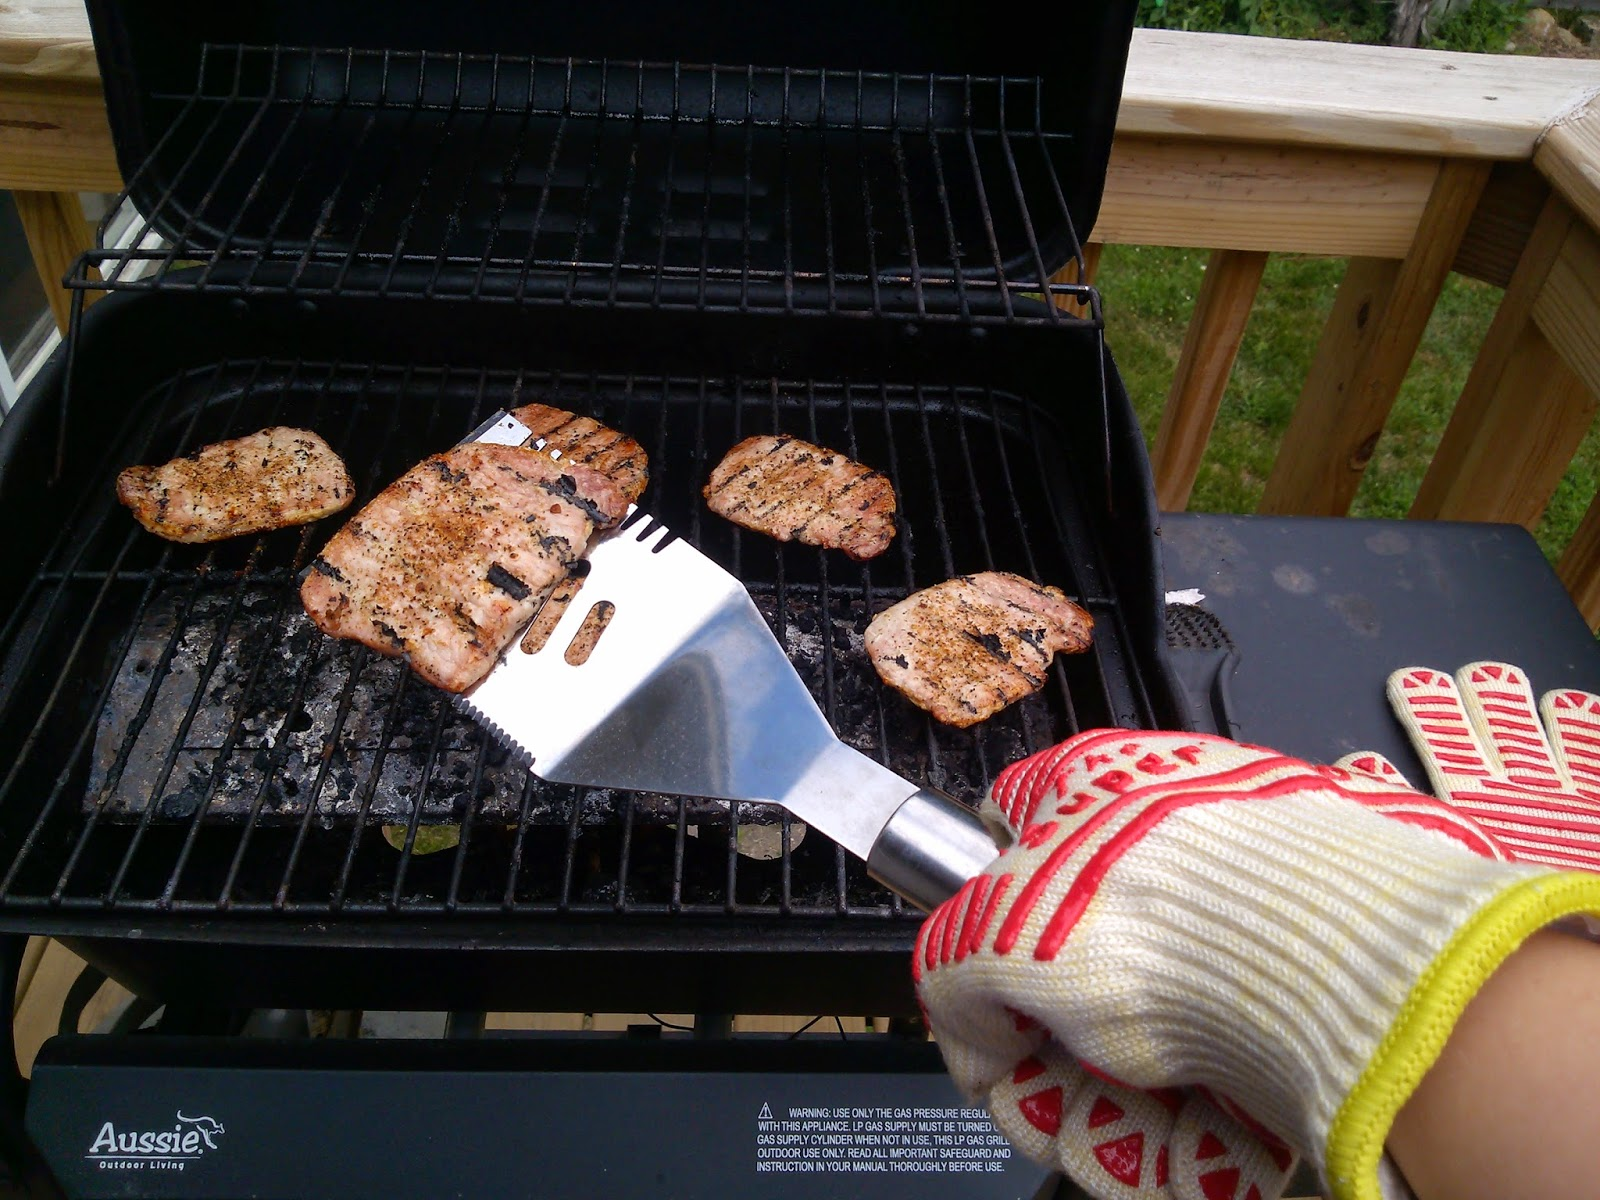 The Super Glove - Heat Resistant Grill & Oven Gloves Review